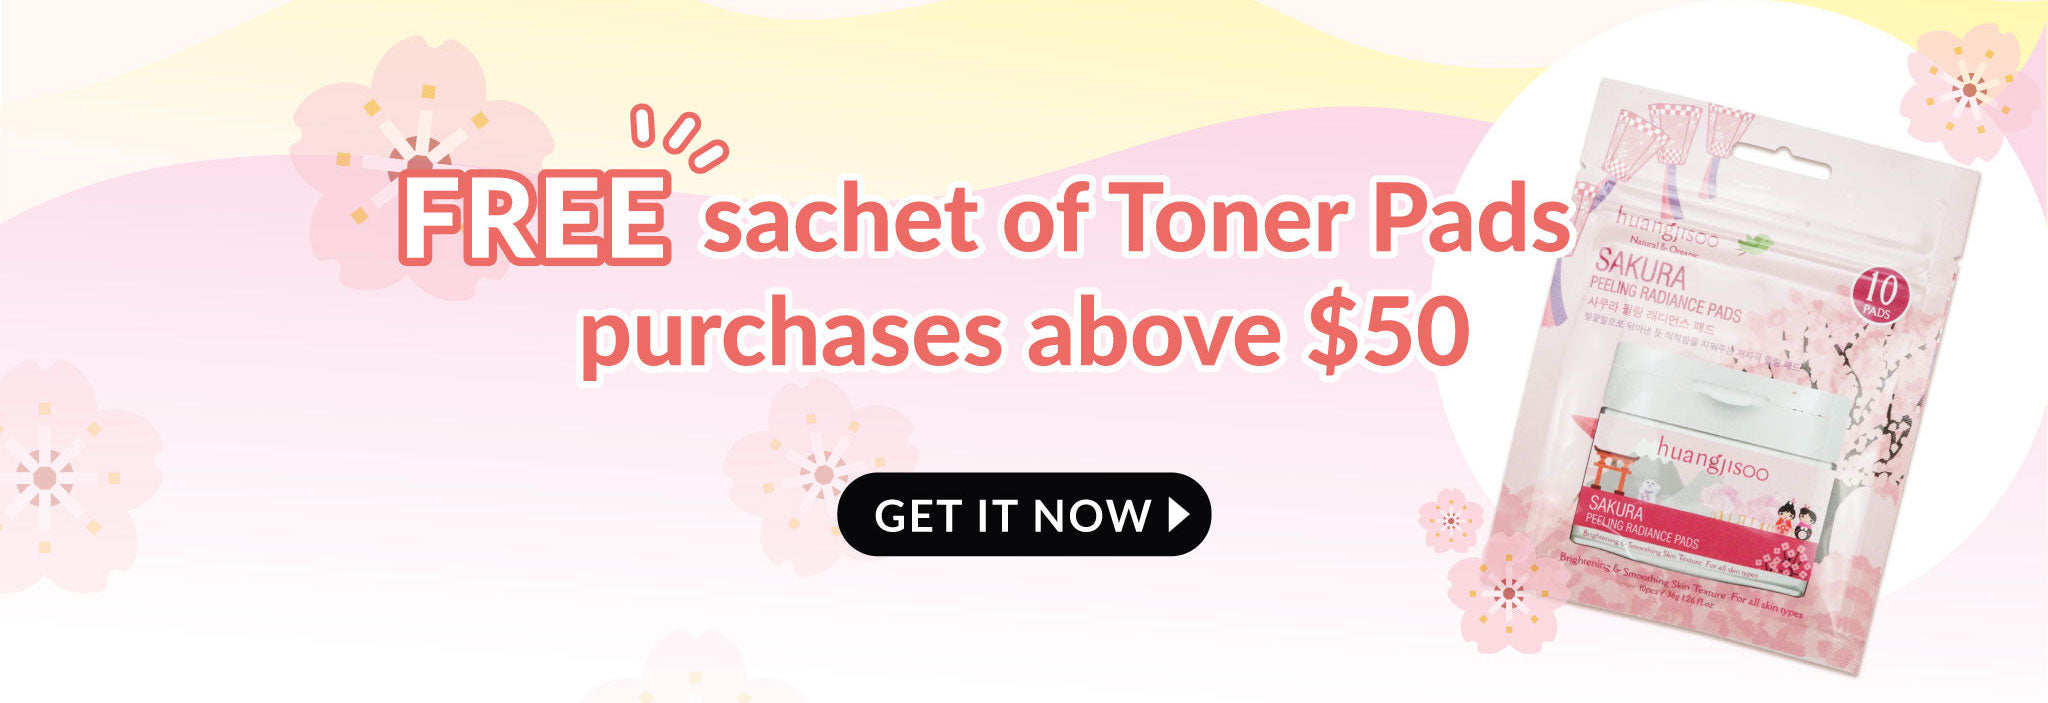 Get Free Sachet of Toner Pads with Purchase above $50